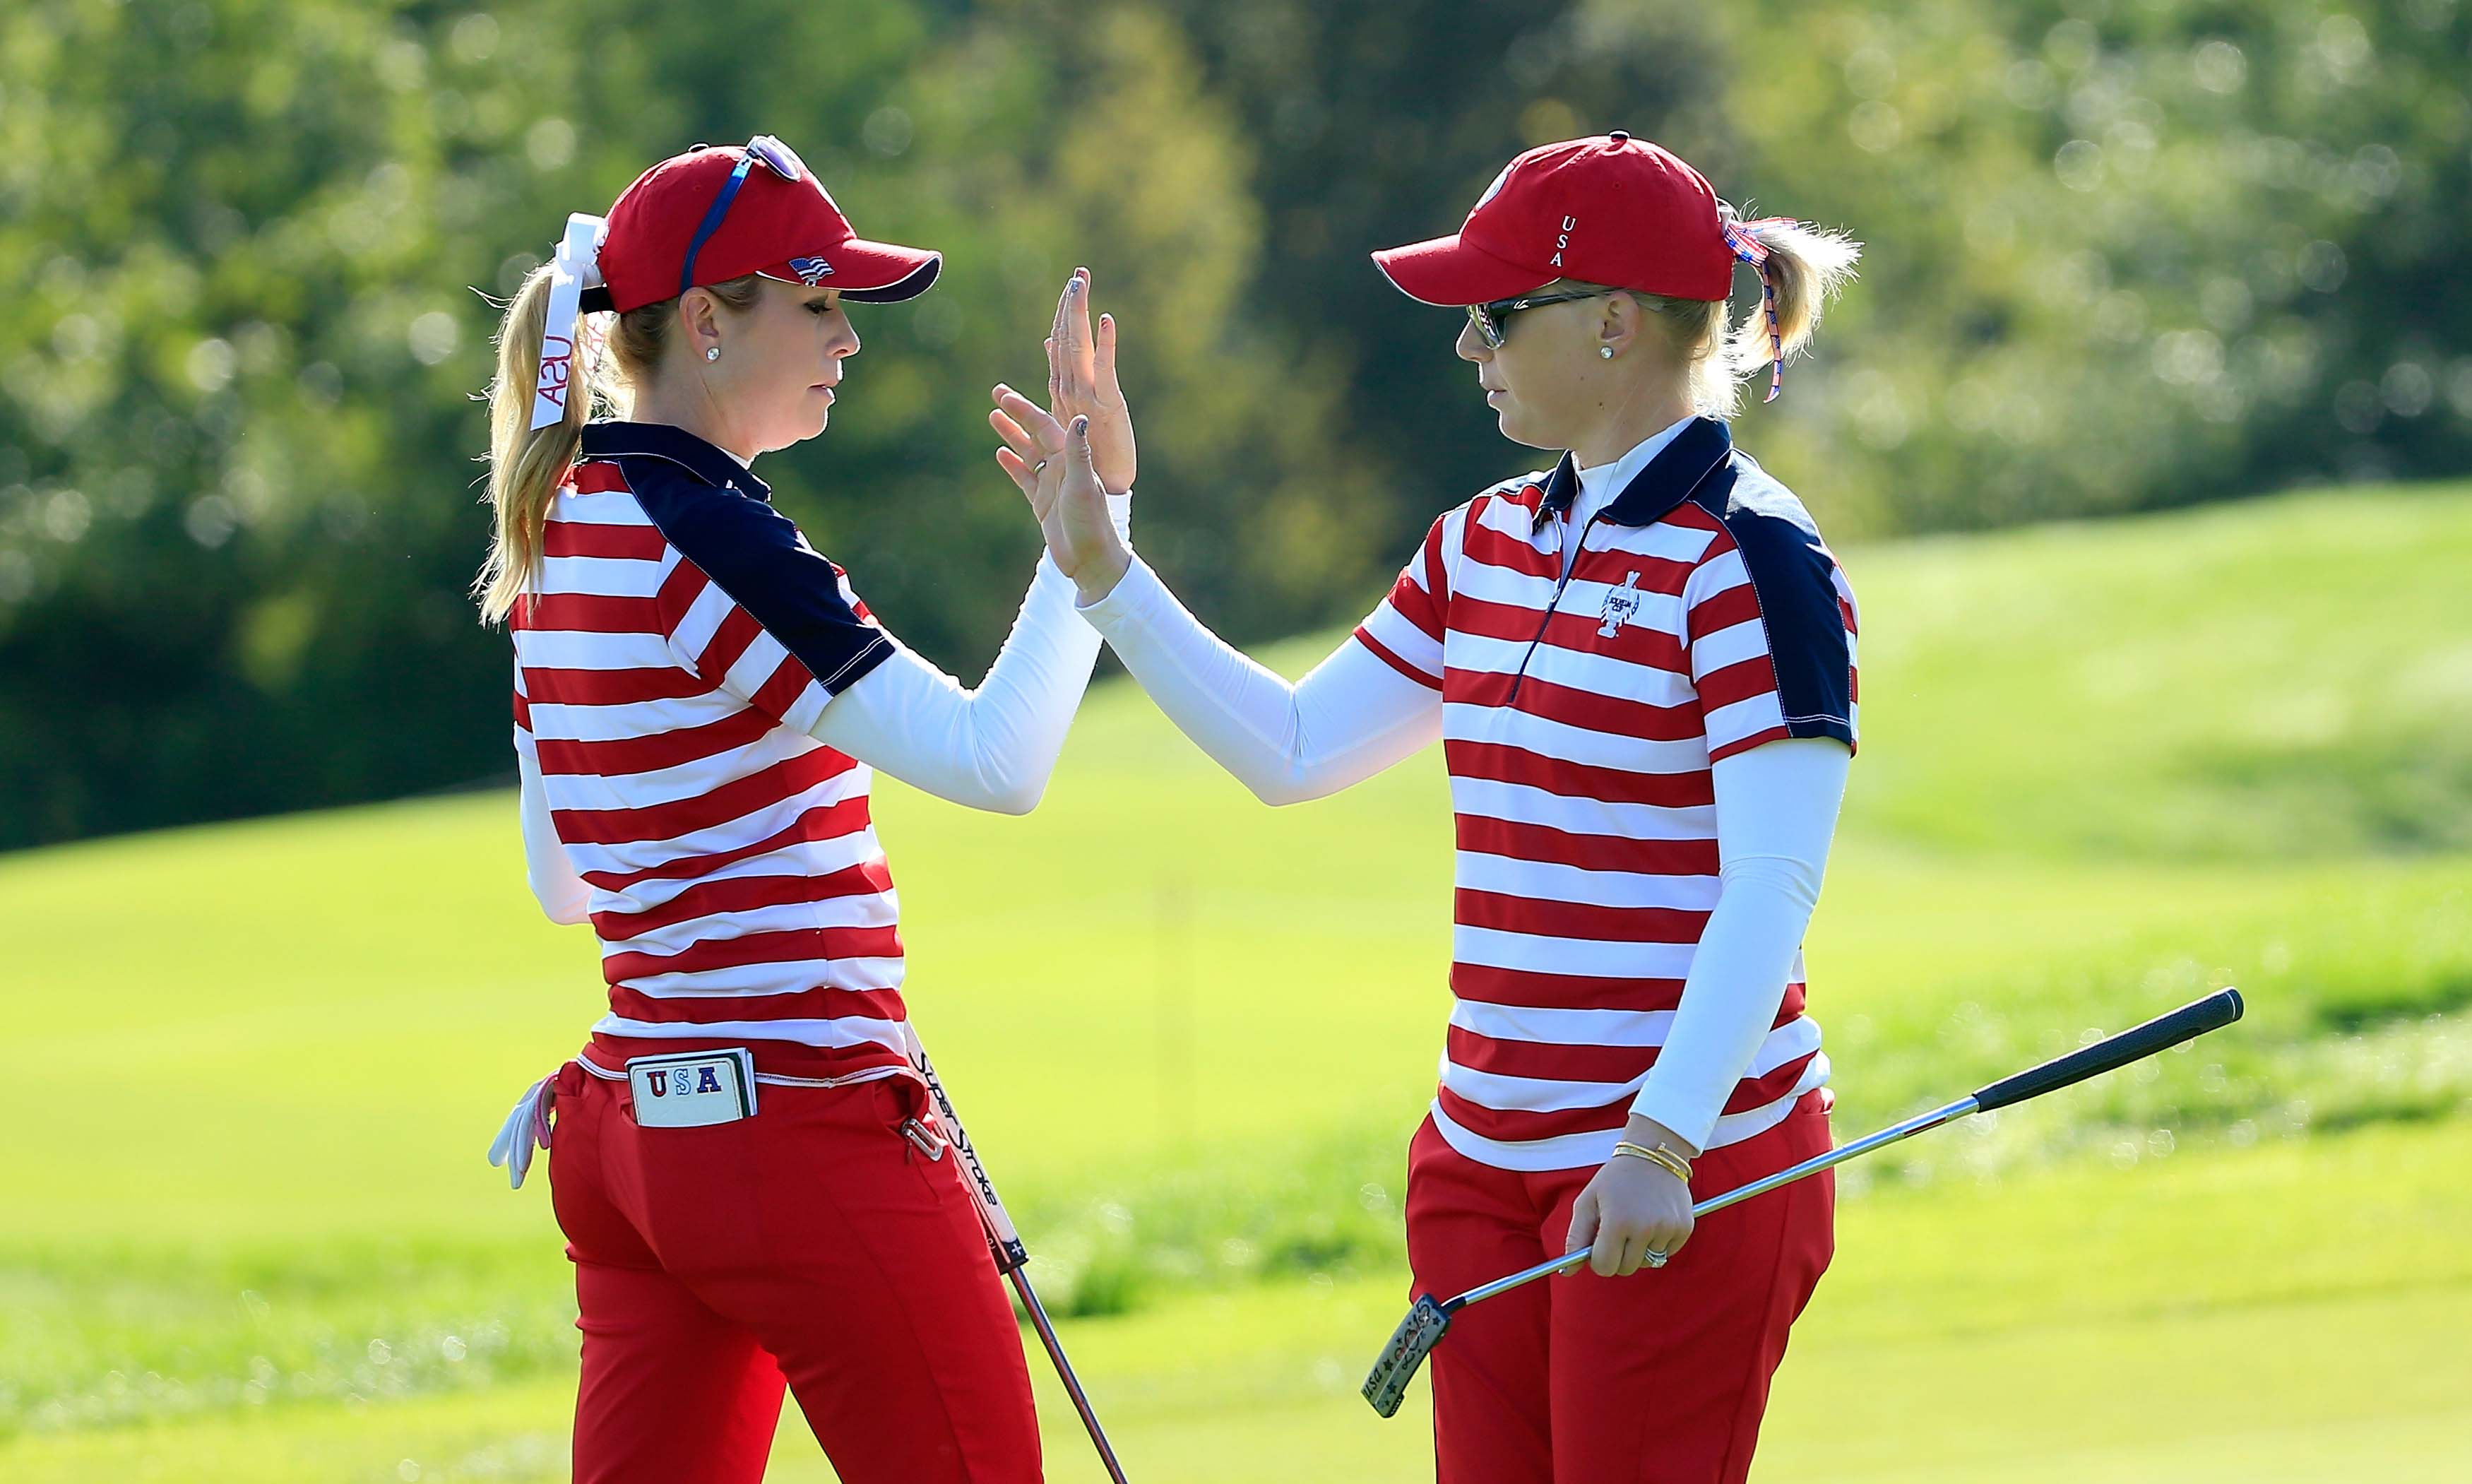 Paula Creamer and Morgan Pressel